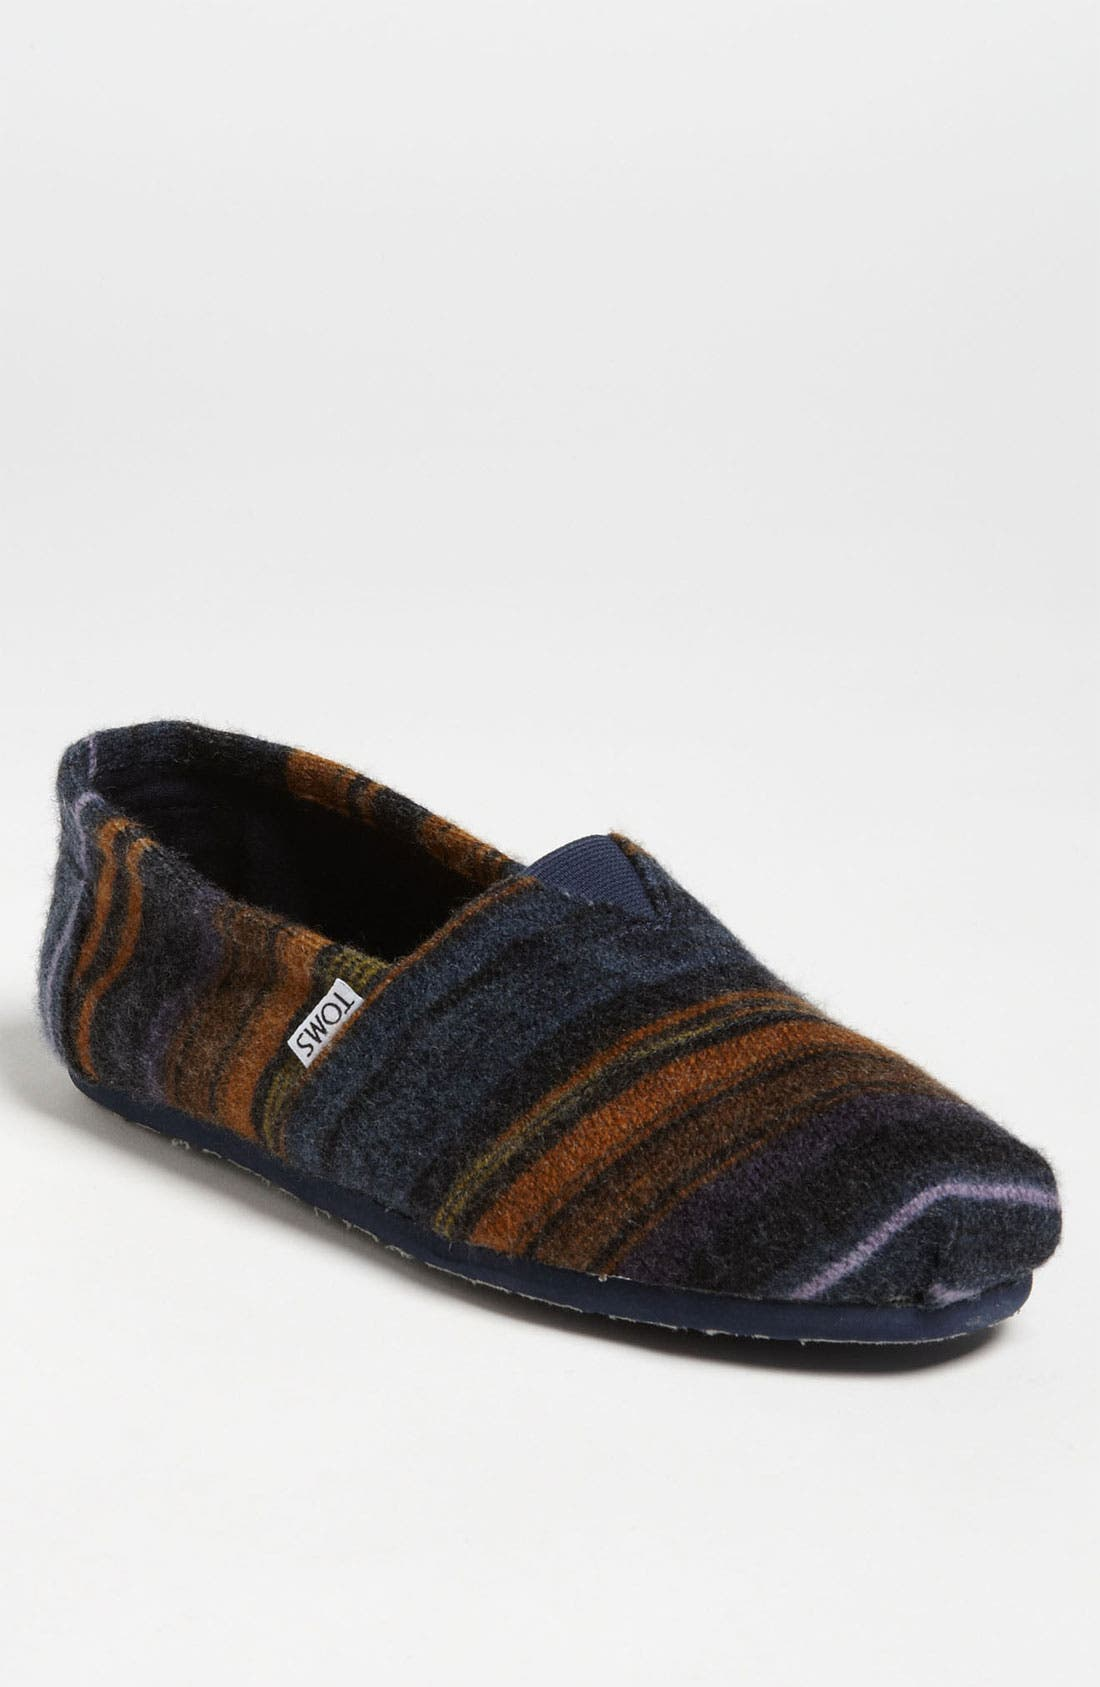 Alternate Image 1 Selected - TOMS 'Classic - Novelty Knit' Slip-On (Men)